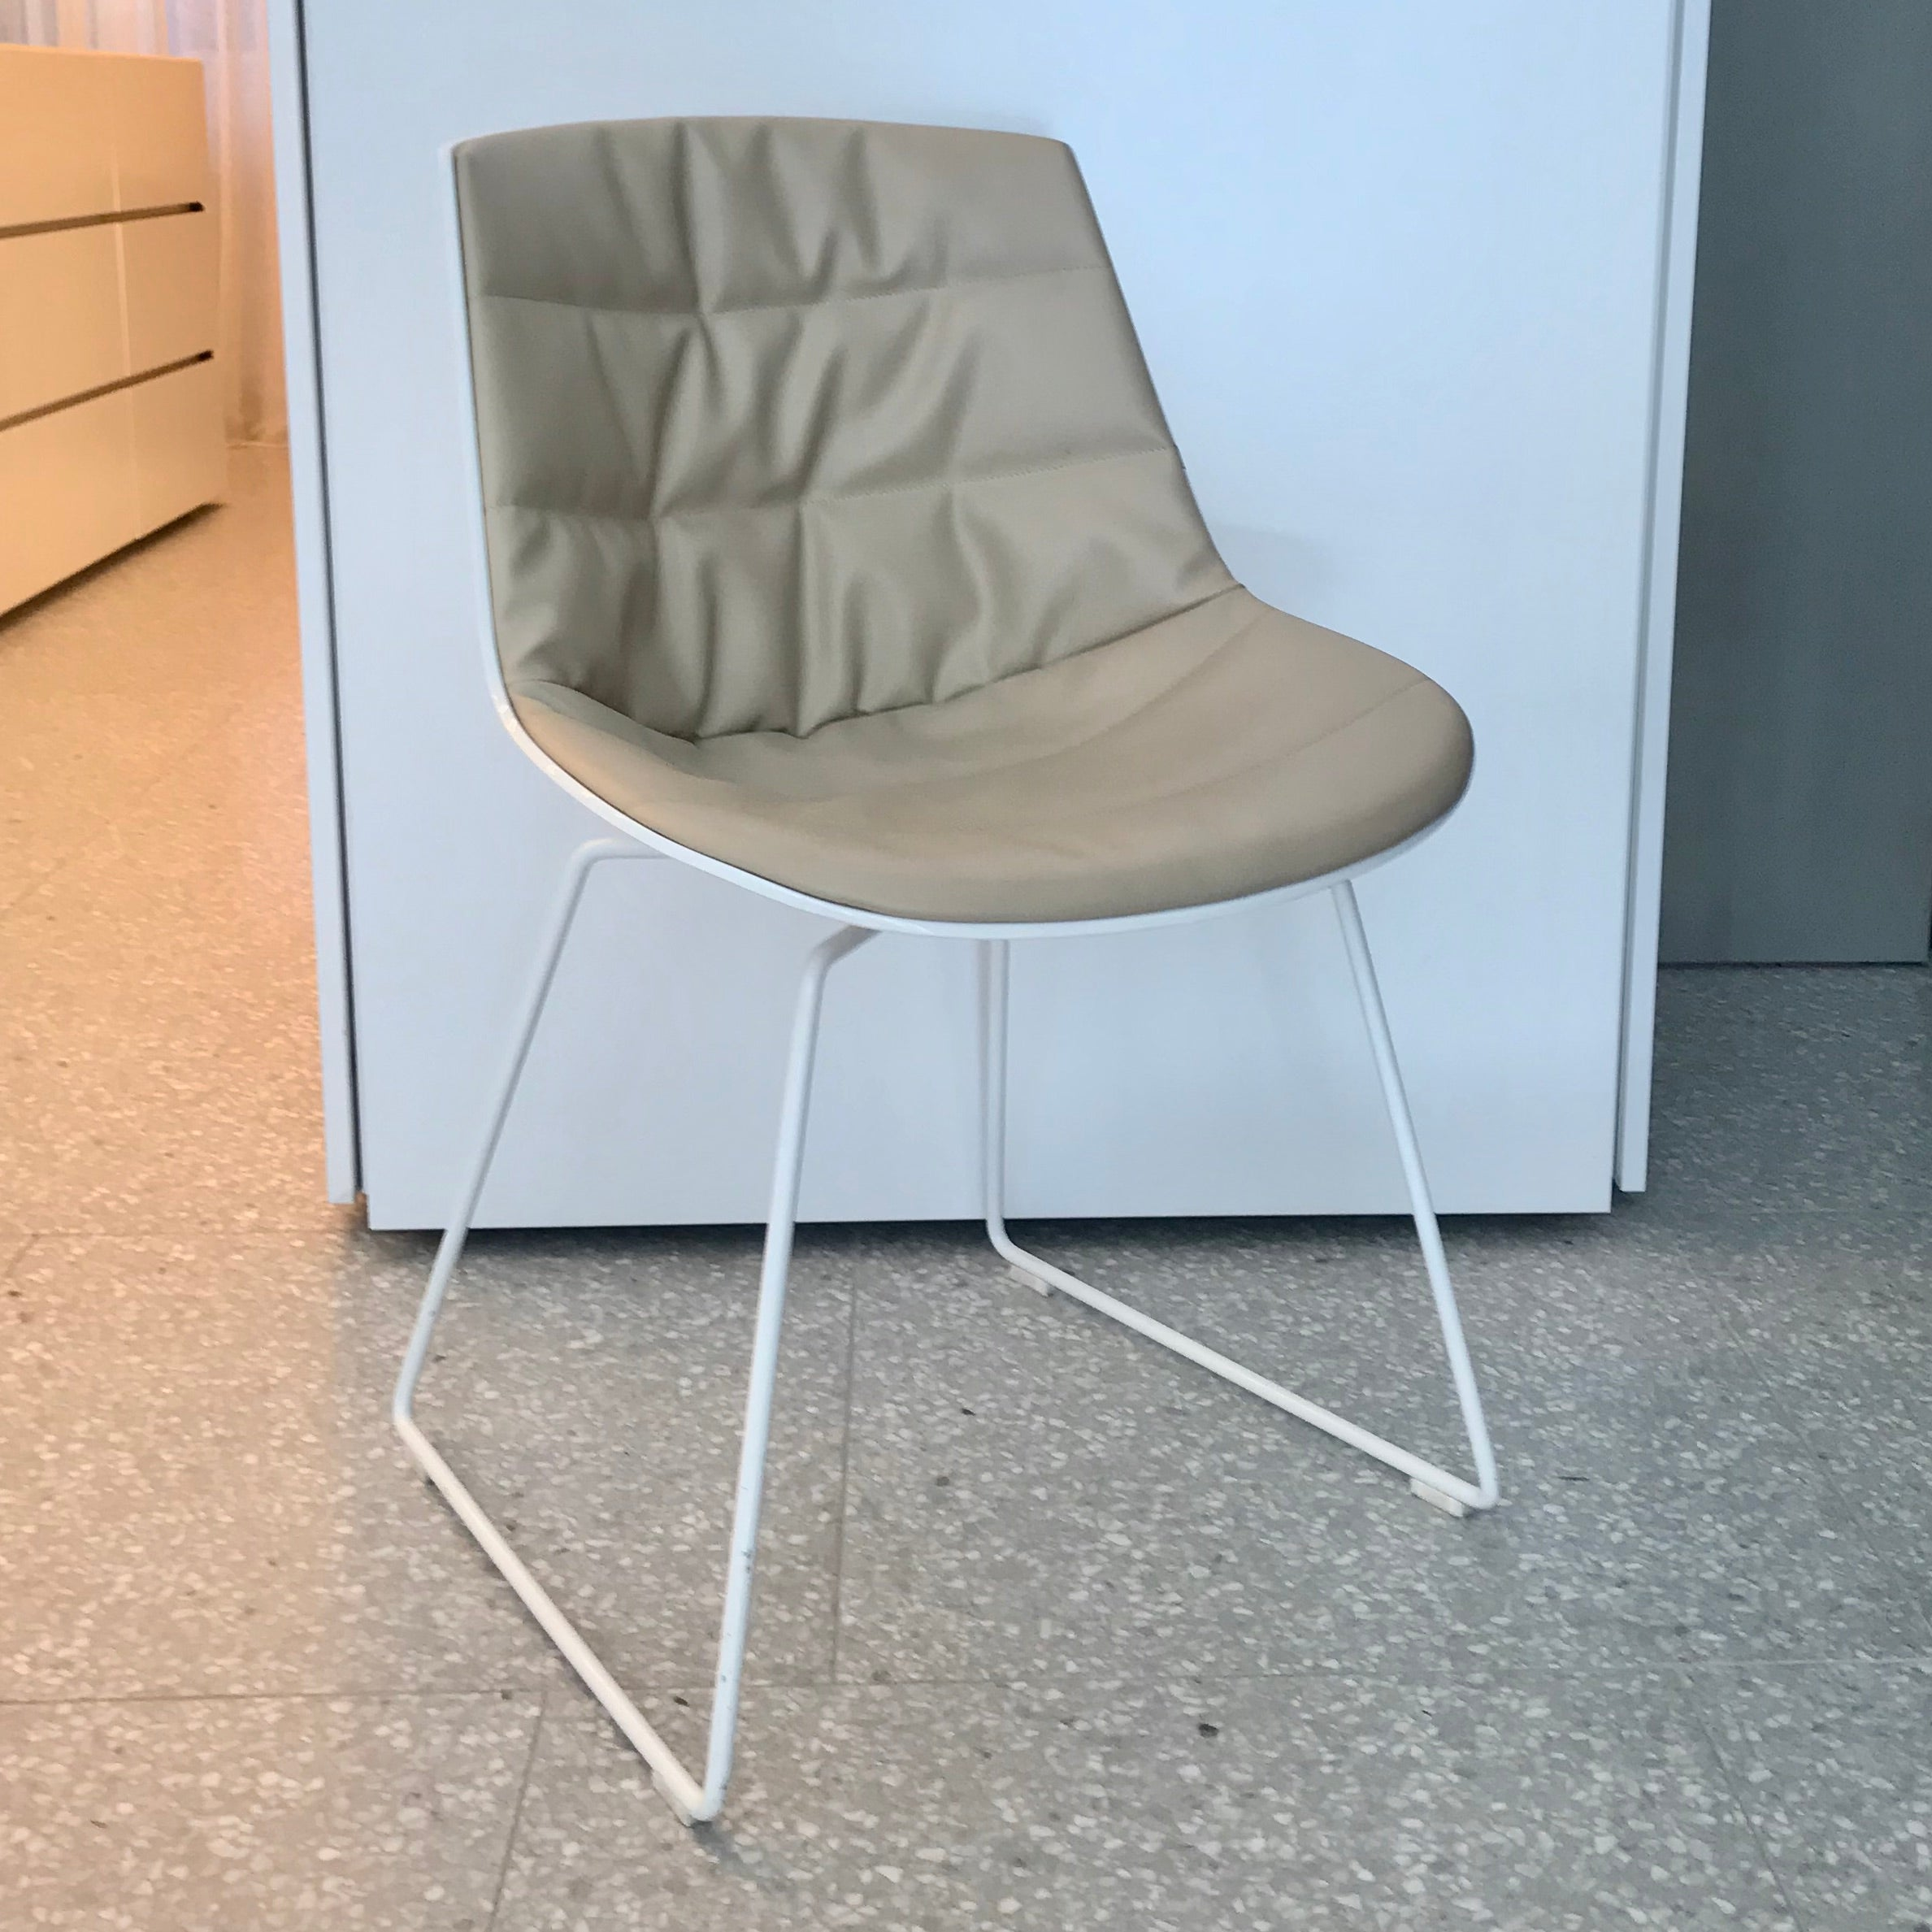 Set of FOUR Flow Chairs by Jean Marie Massaud for MDF Italia